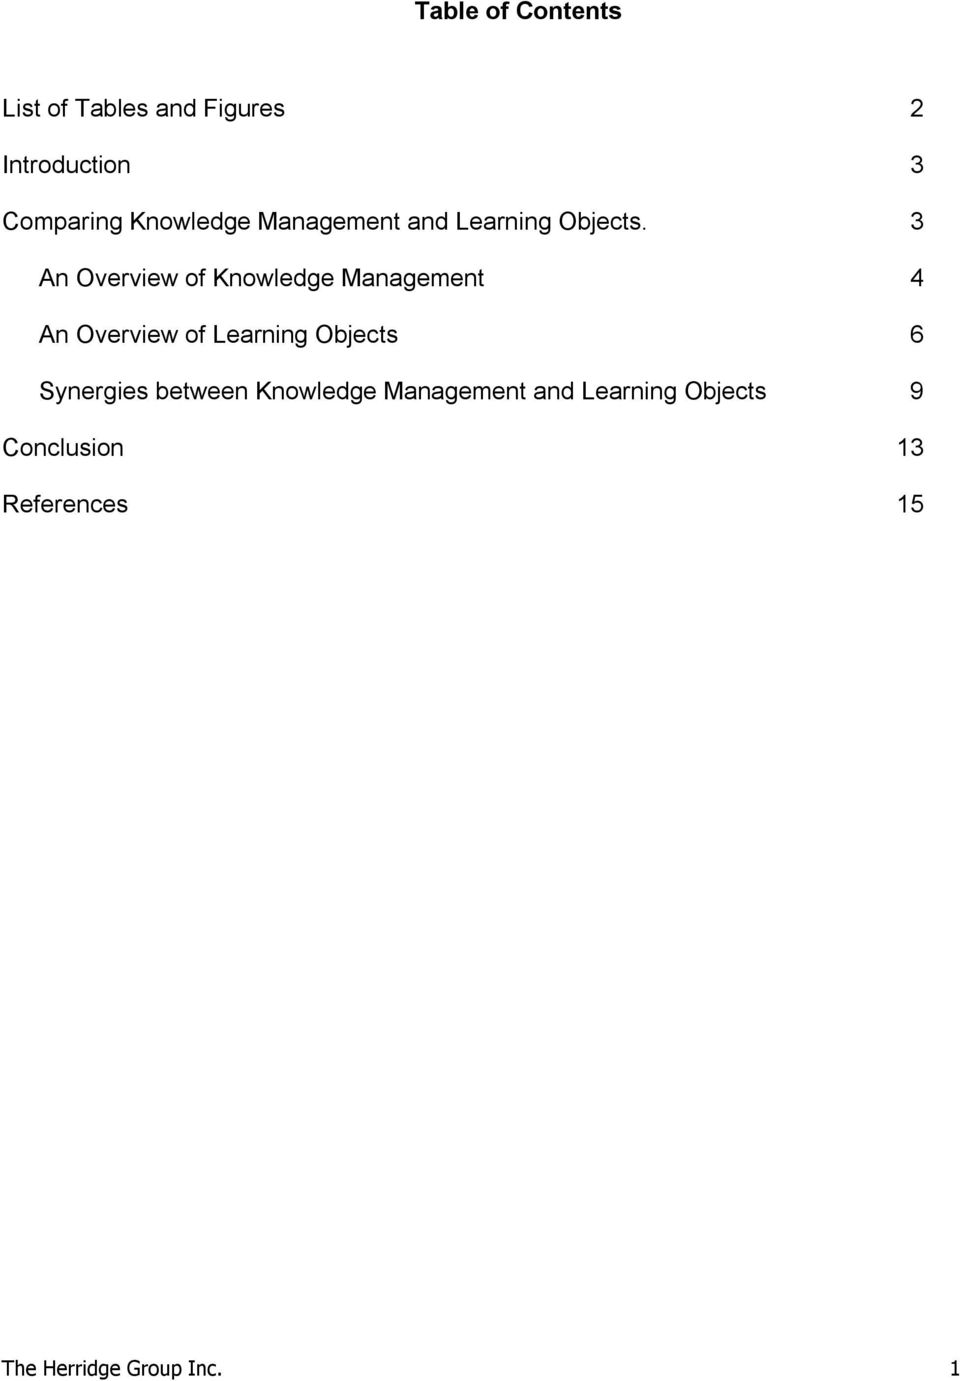 3 An Overview of Knowledge Management 4 An Overview of Learning Objects 6